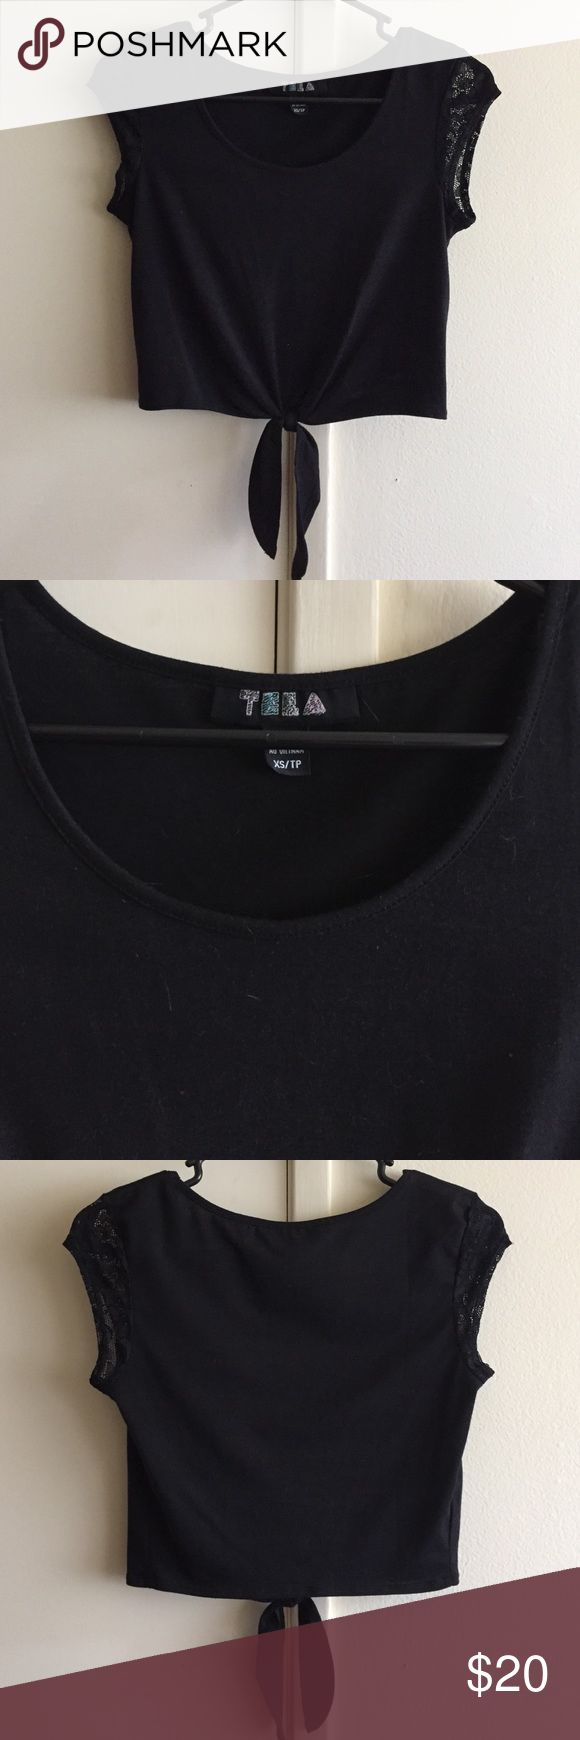 Tela black crop top Perfect for high waisted jeans or shorts and a night out or for day time Urban Outfitters Tops Crop Tops